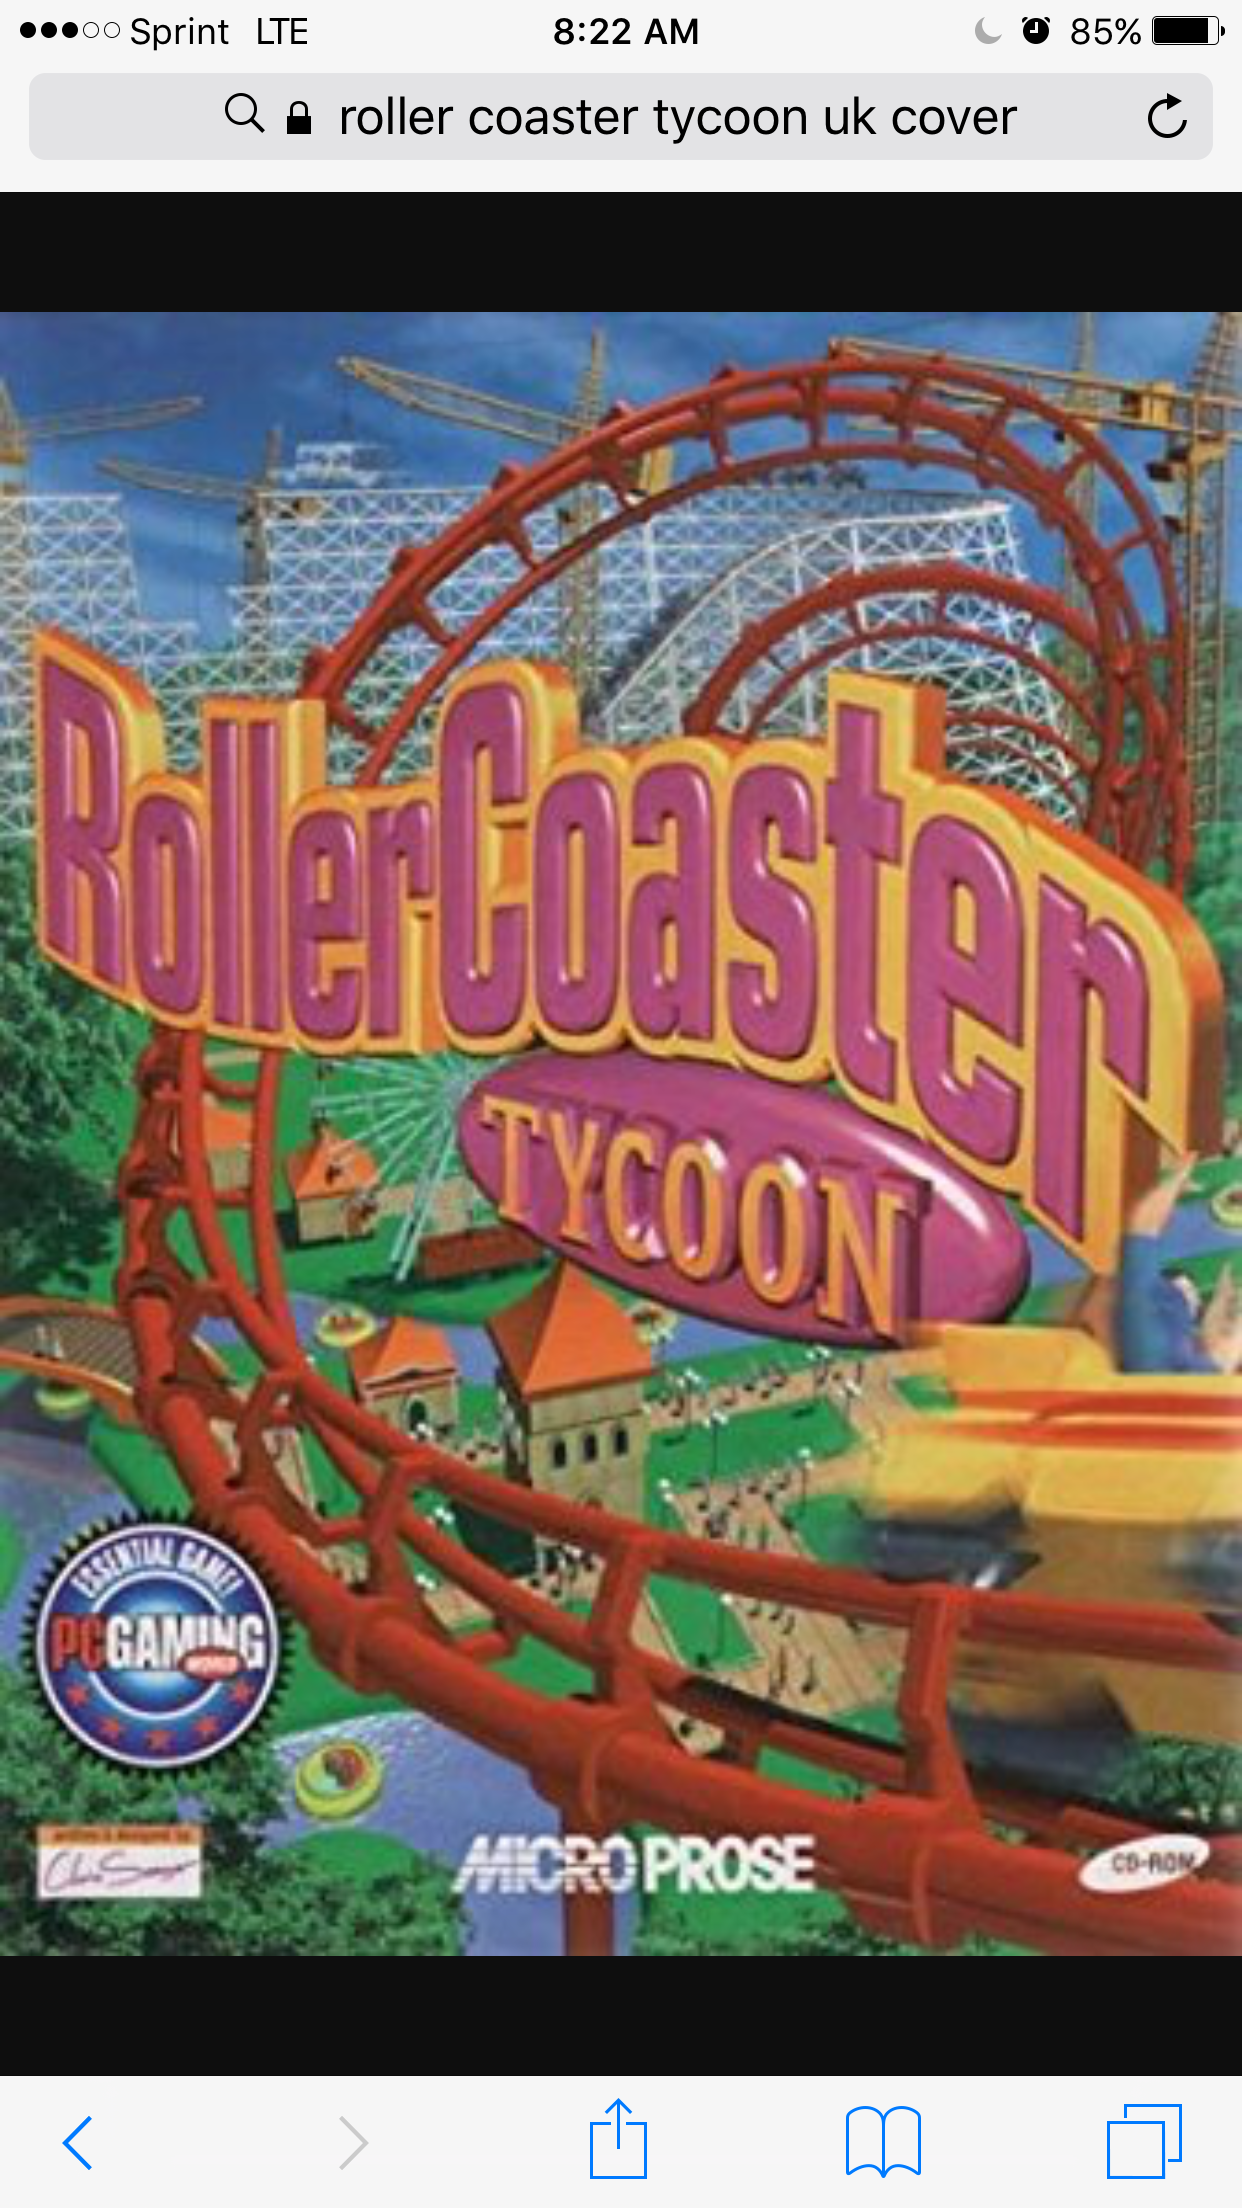 RollerCoaster Tycoon: The Newest Musical | Disney Parks